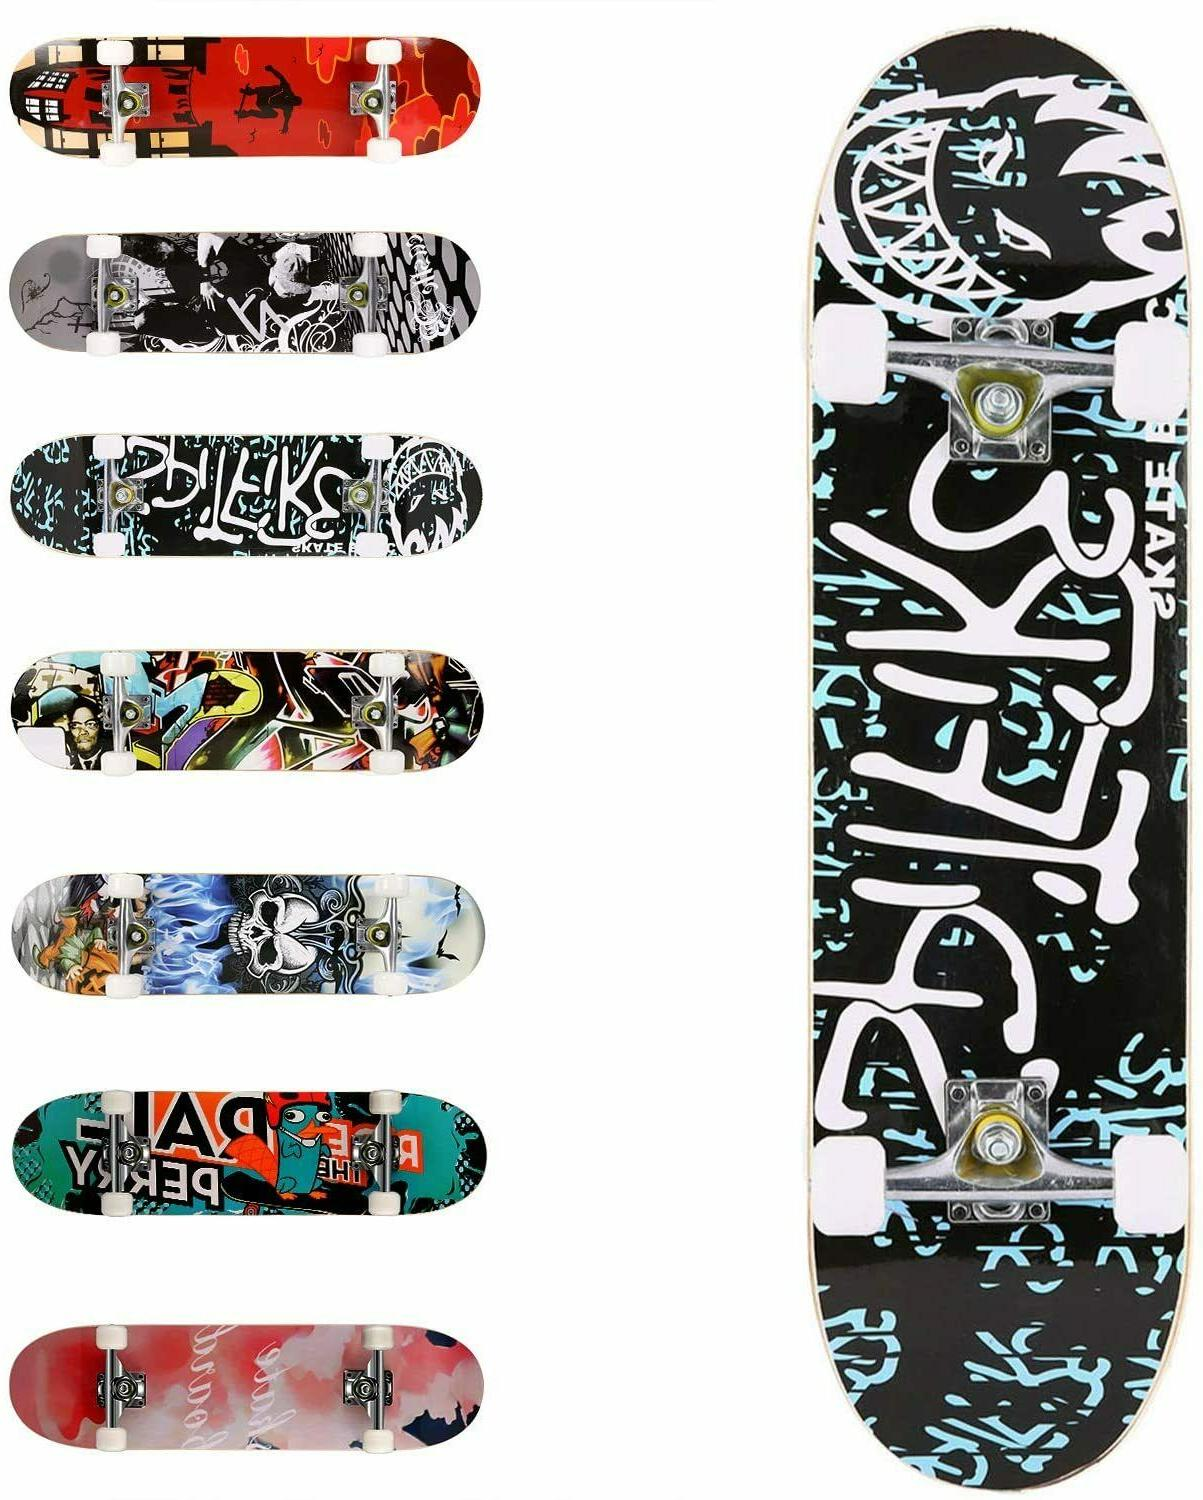 complete skateboard standard 31x8 inch with double